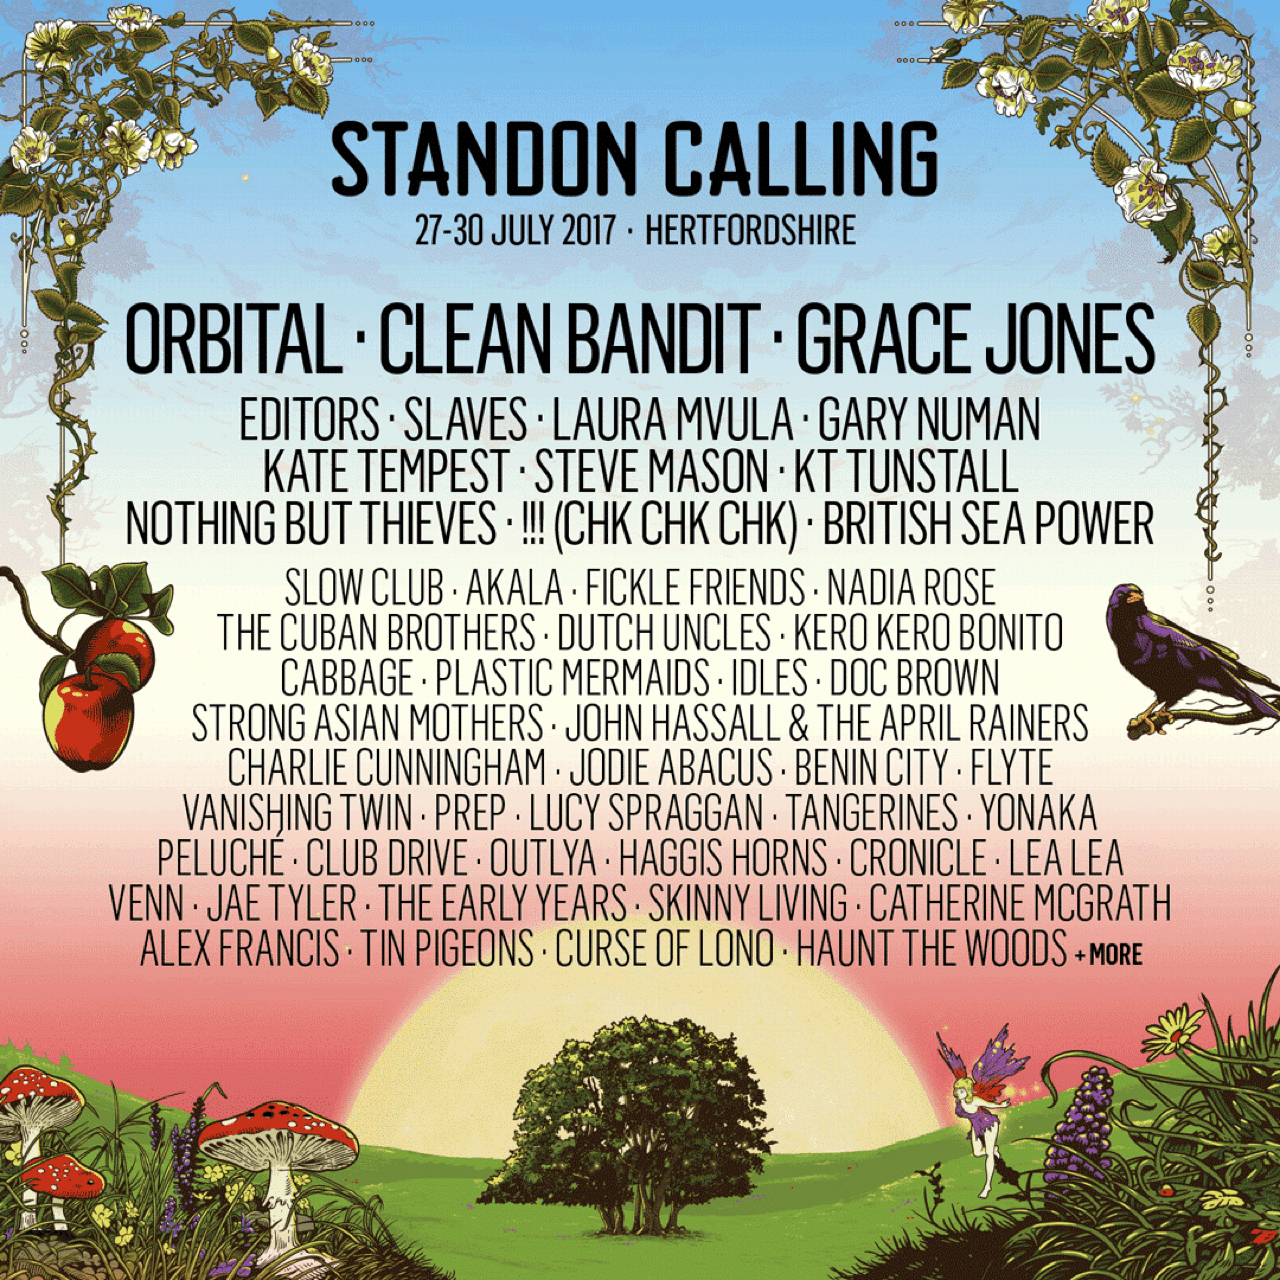 StandonCalling2017_3_5_17